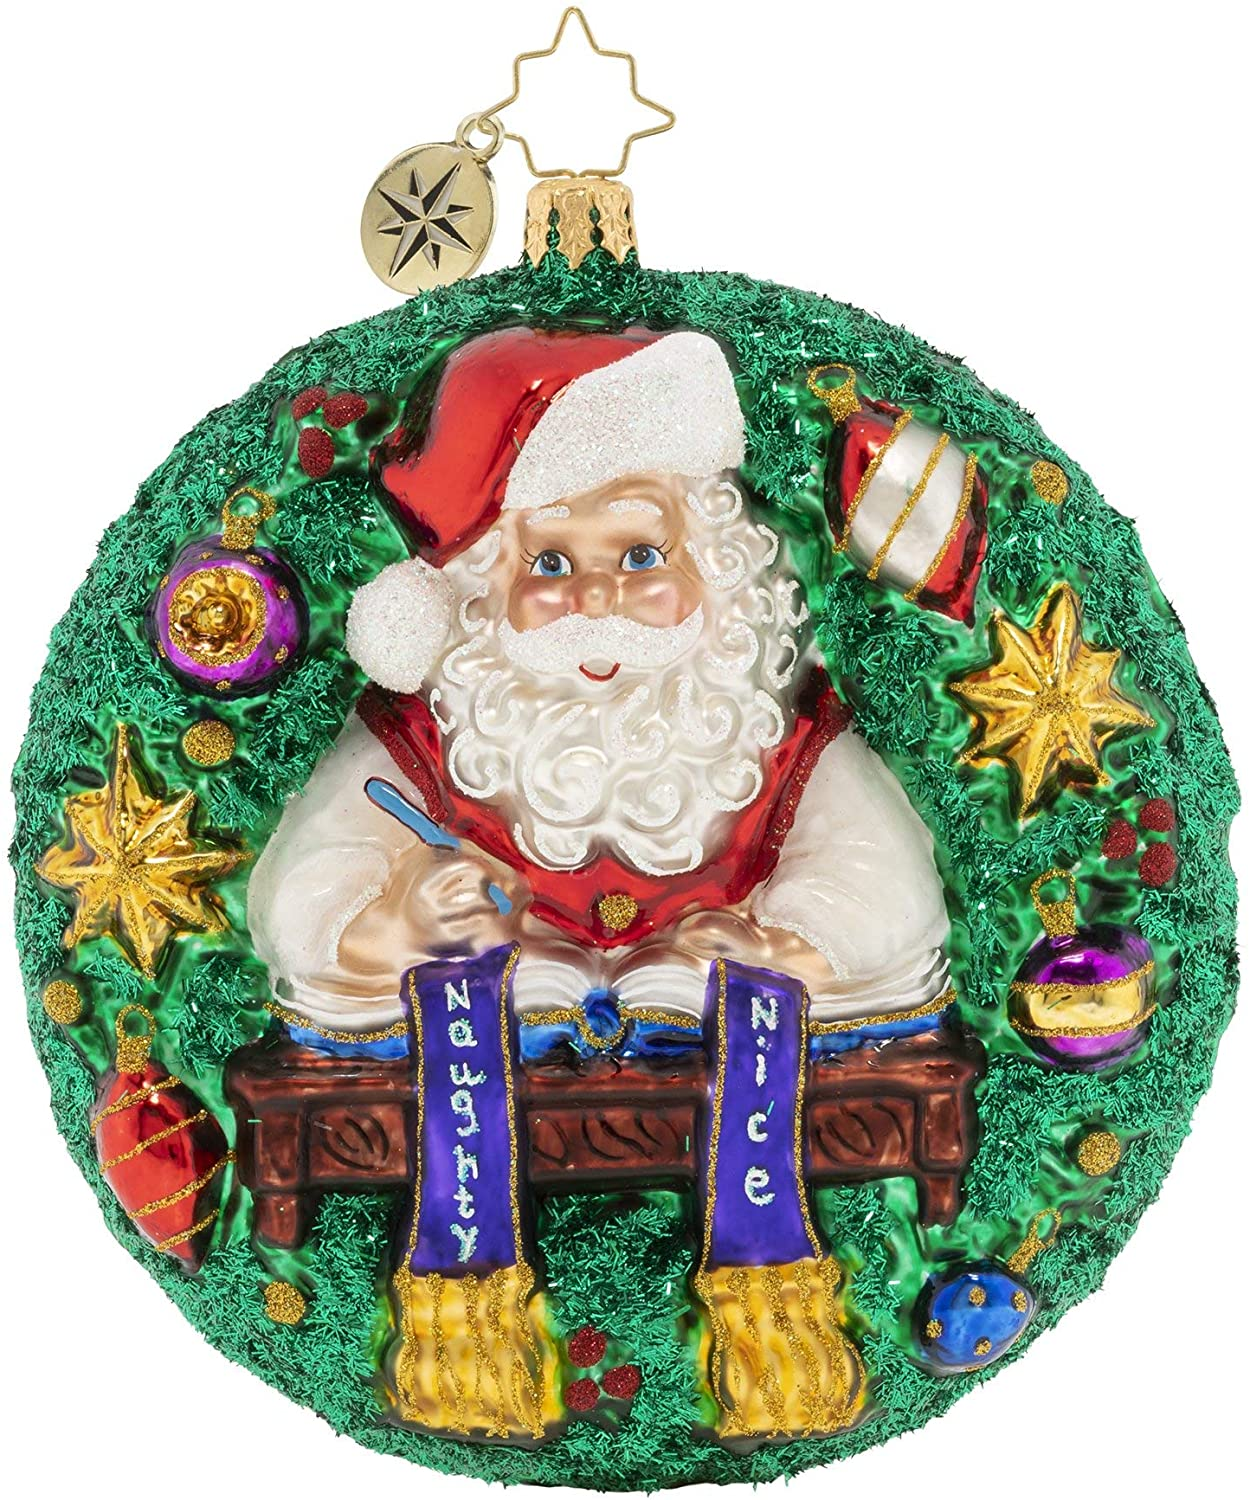 Christopher Radko Hand-Crafted European Glass Christmas Decorative Figural Ornament, Naughty or Nice Wreath